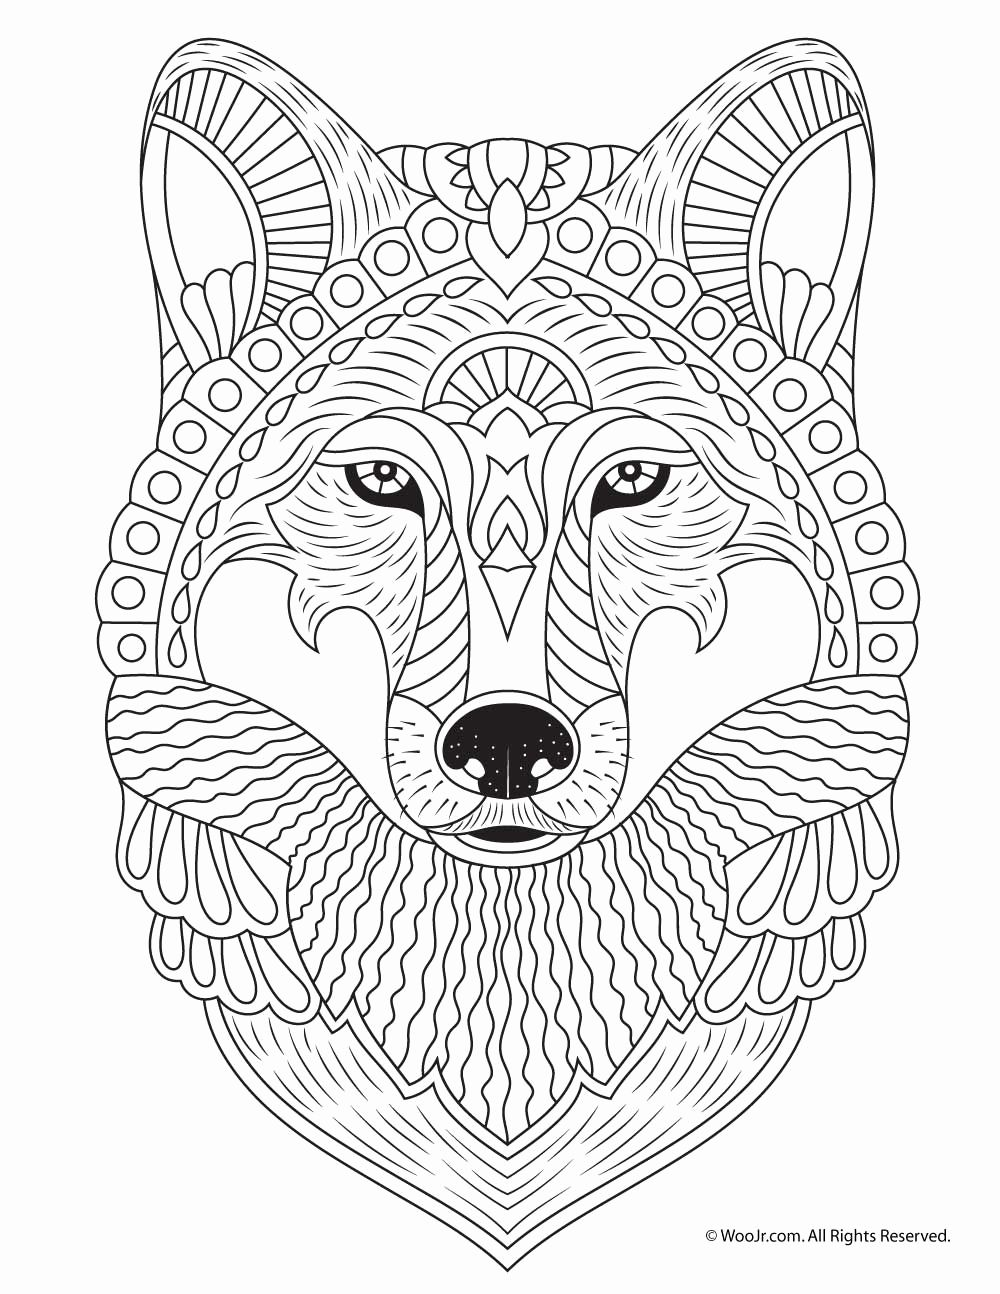 Wolf Head Coloring Pages - Reezacourbei Coloring